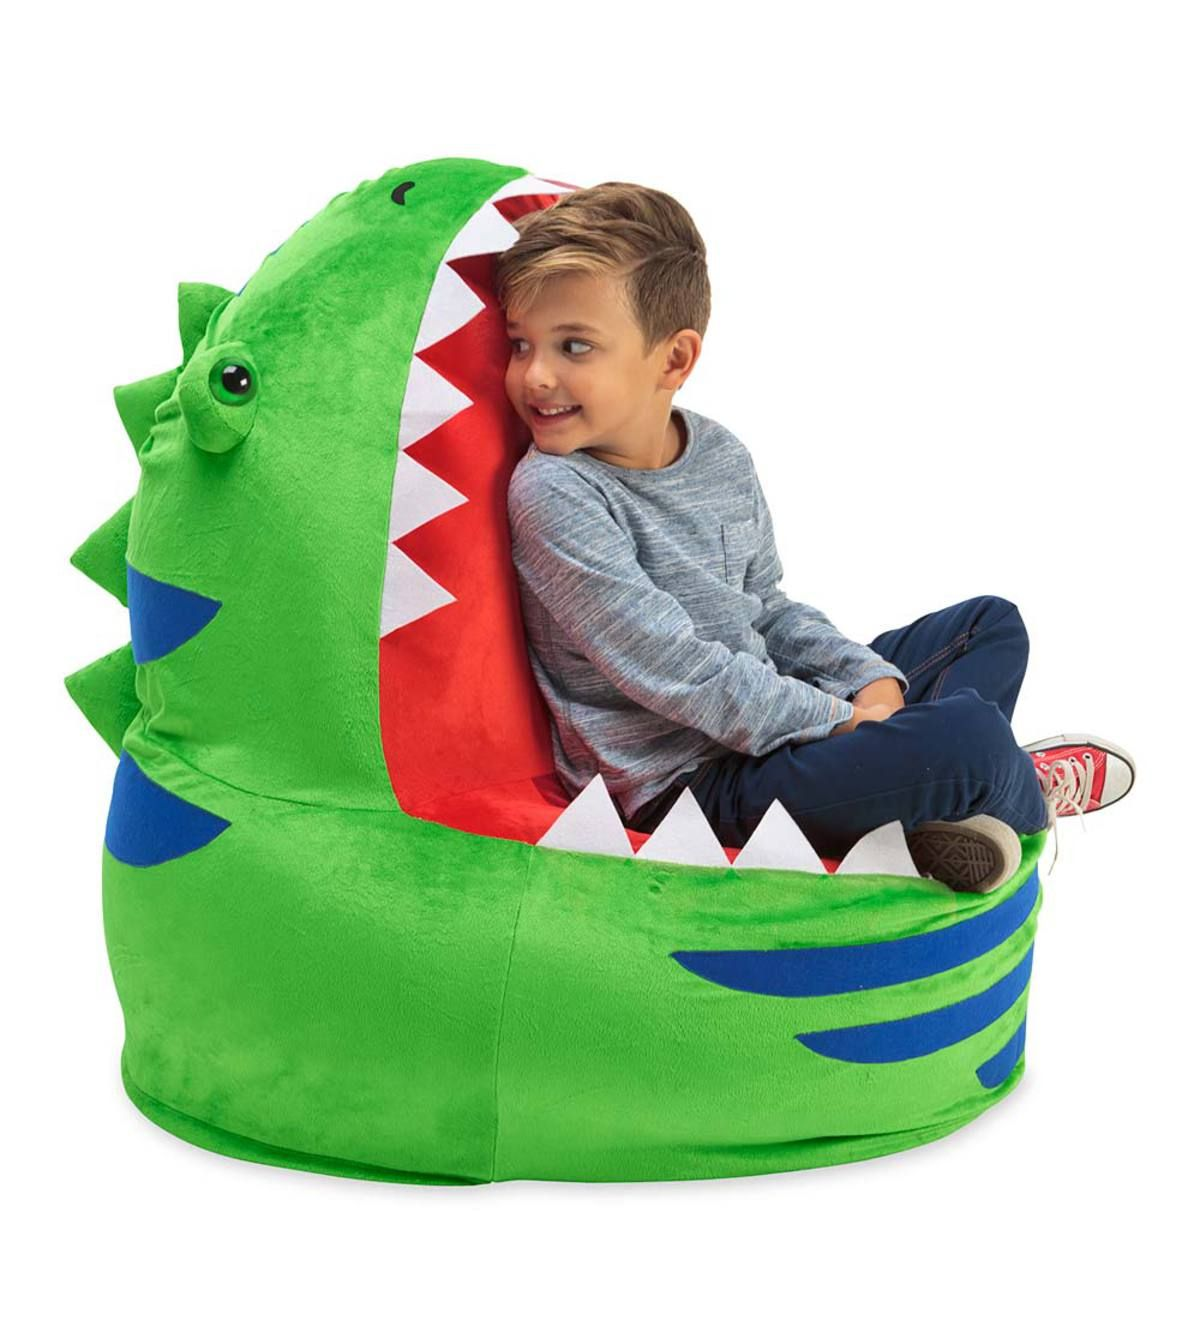 Our Inflatable Dino Chair is a truly awesome place to sit, but is